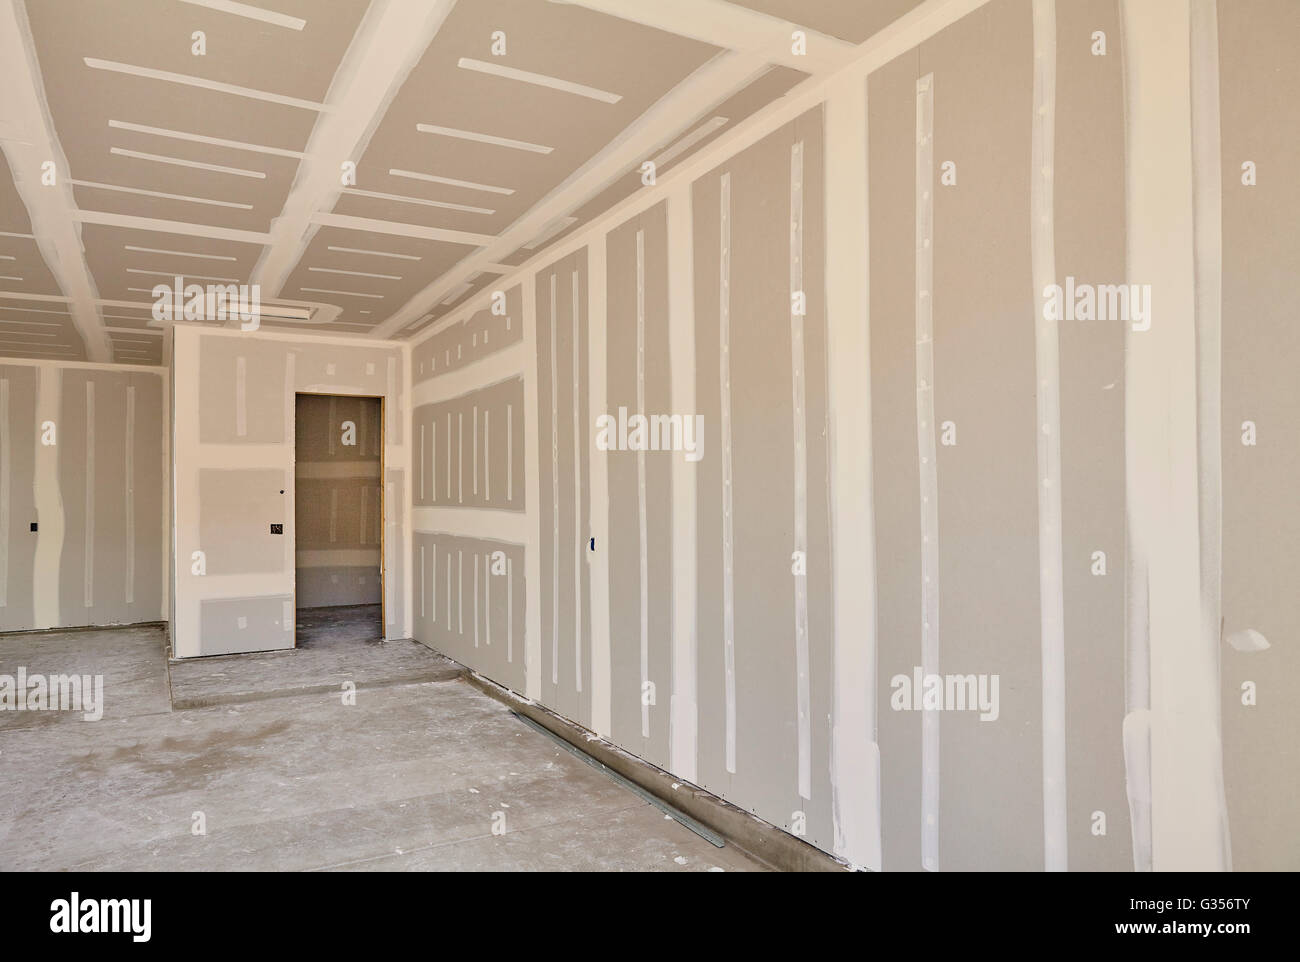 Dry Wall Construction : Construction building industry new home